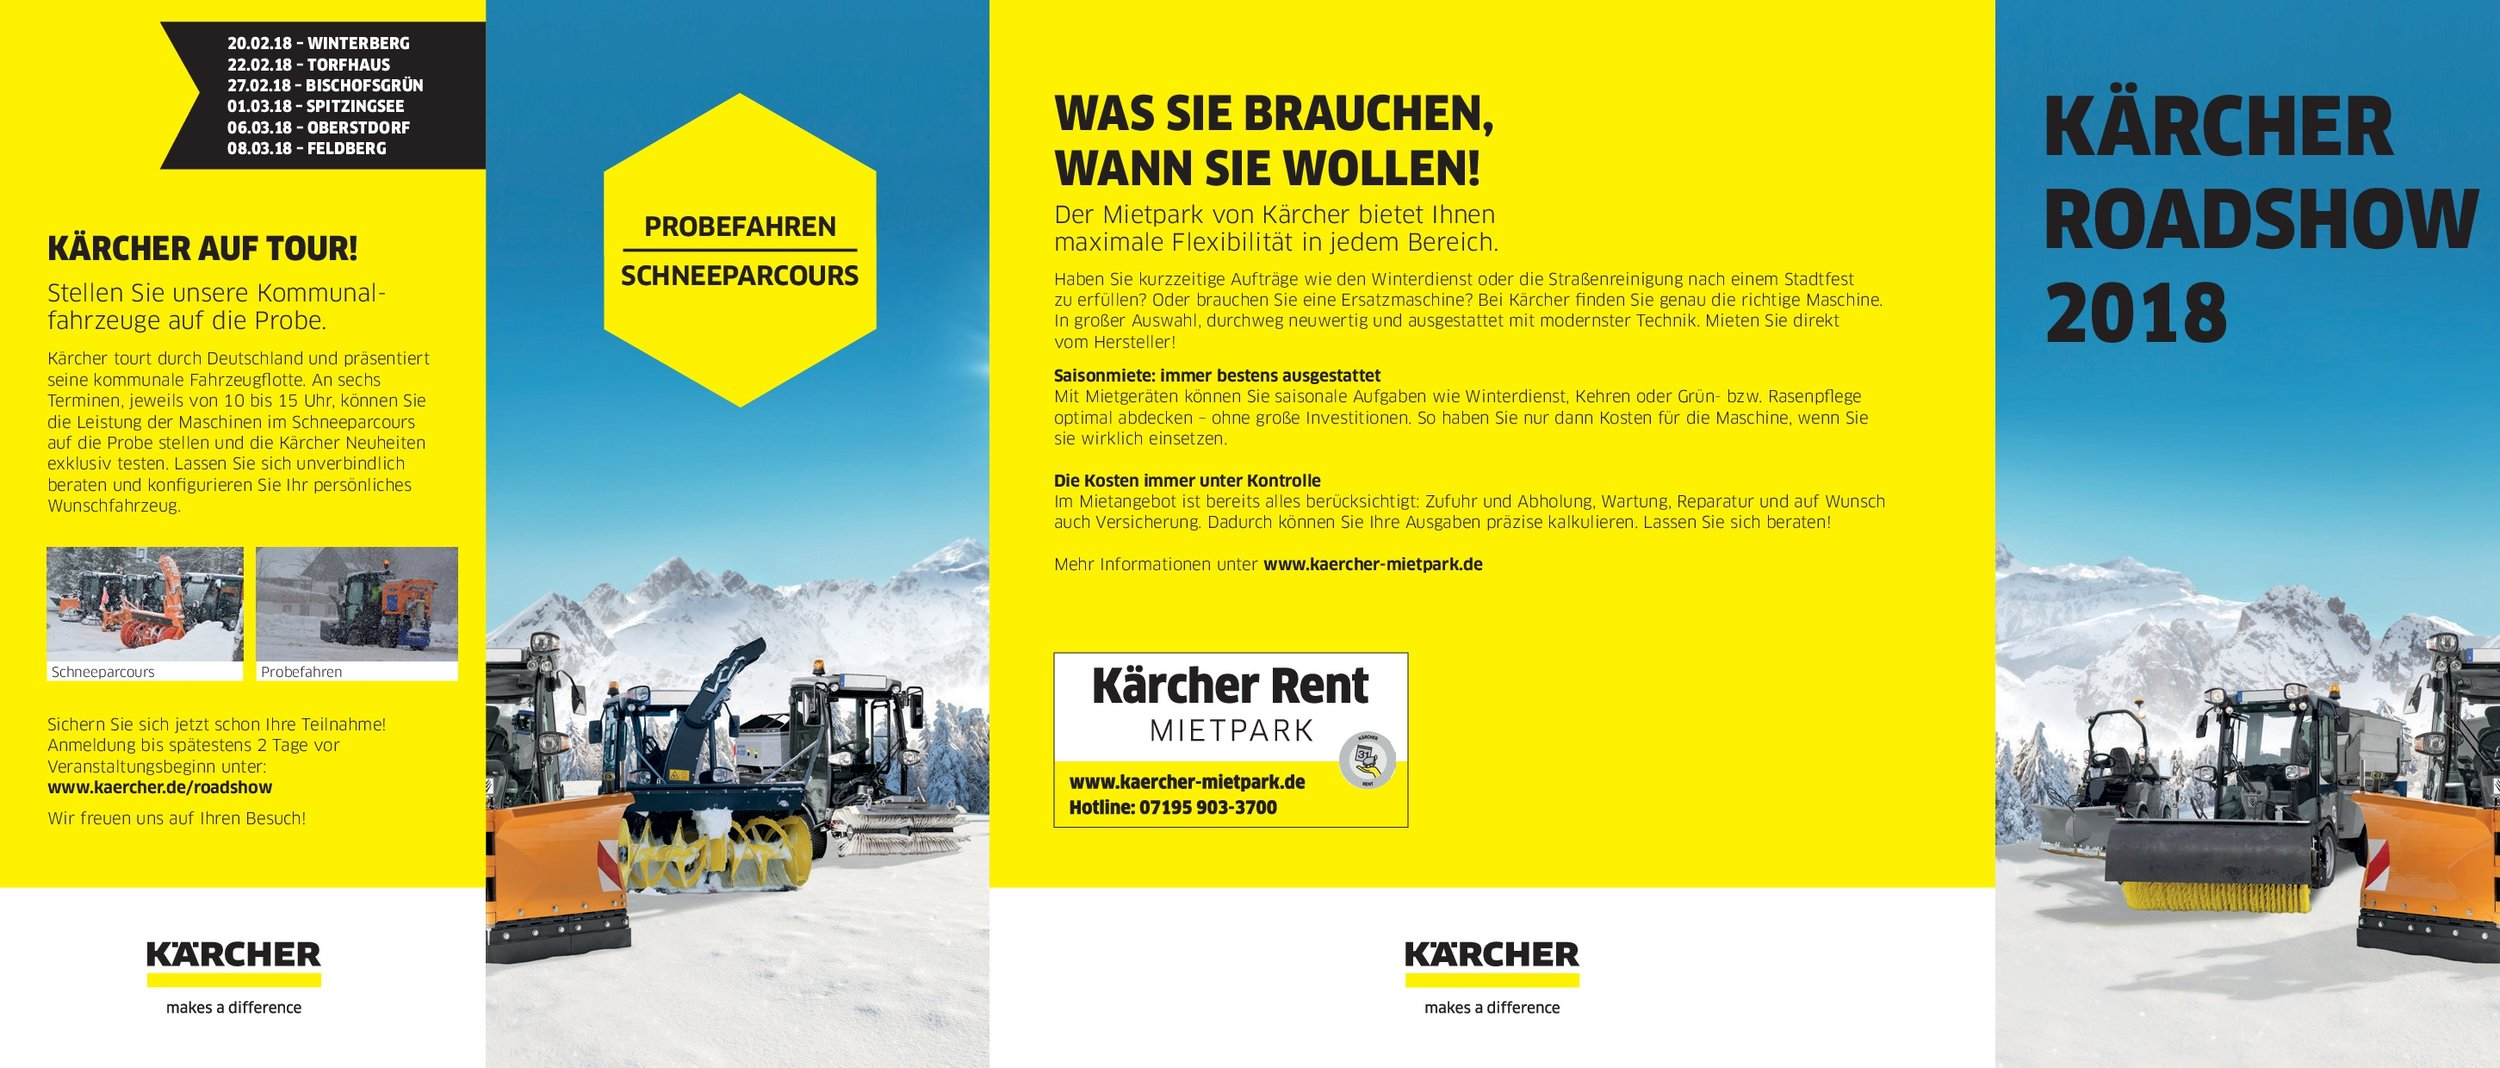 Kärcher Roadshow